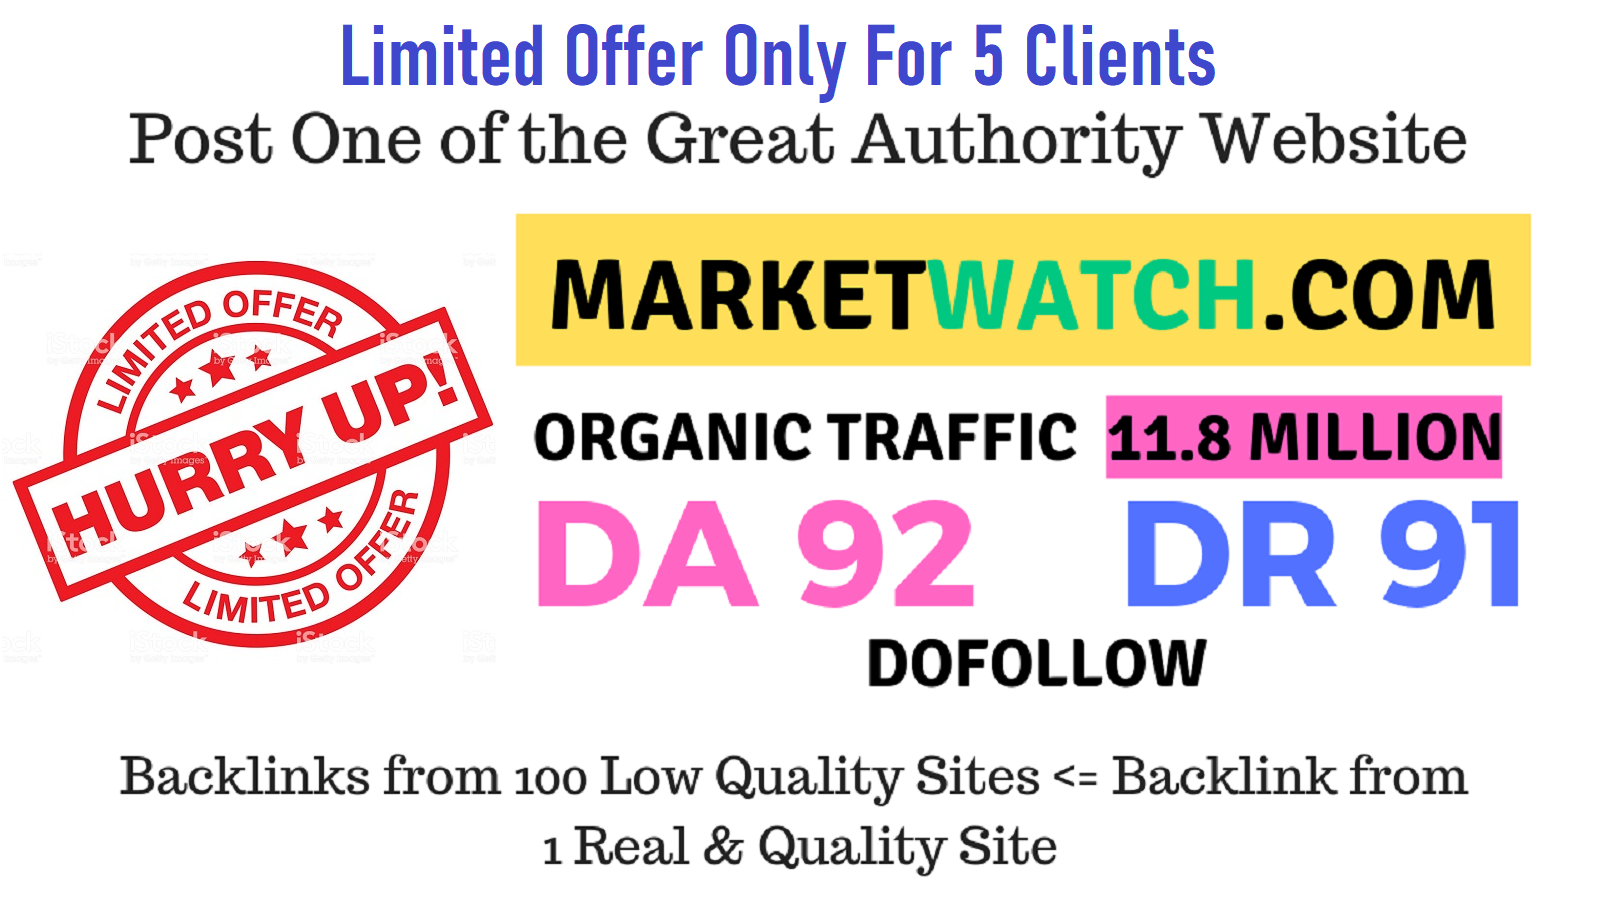 Publish Do Fo-llow Guest P0st On Marketwatch. com Da92 Limited Offer for 10 Clients